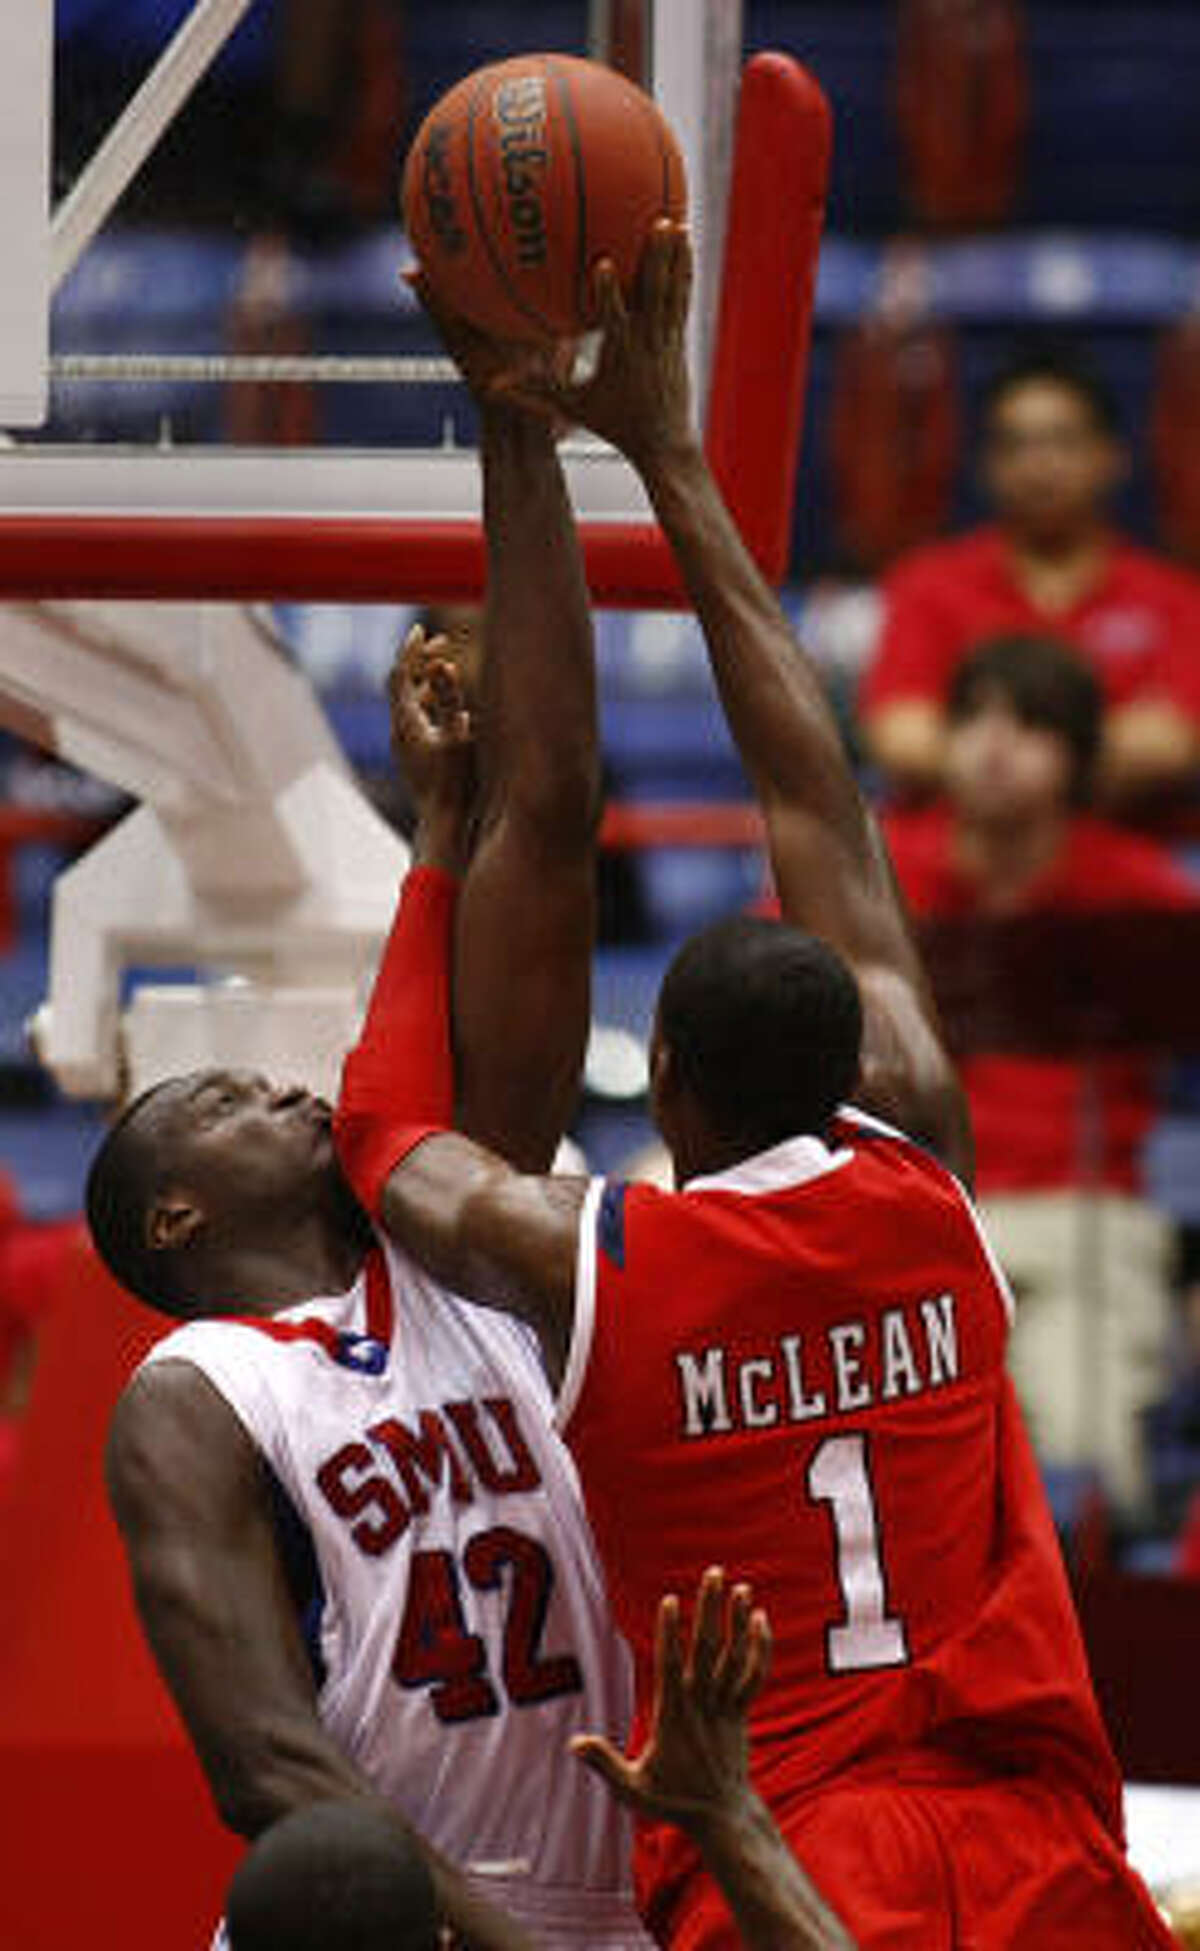 SMU forward Papa Dia (42) records one of his seven blocks on this shot by UH forward Mikhail McLean.